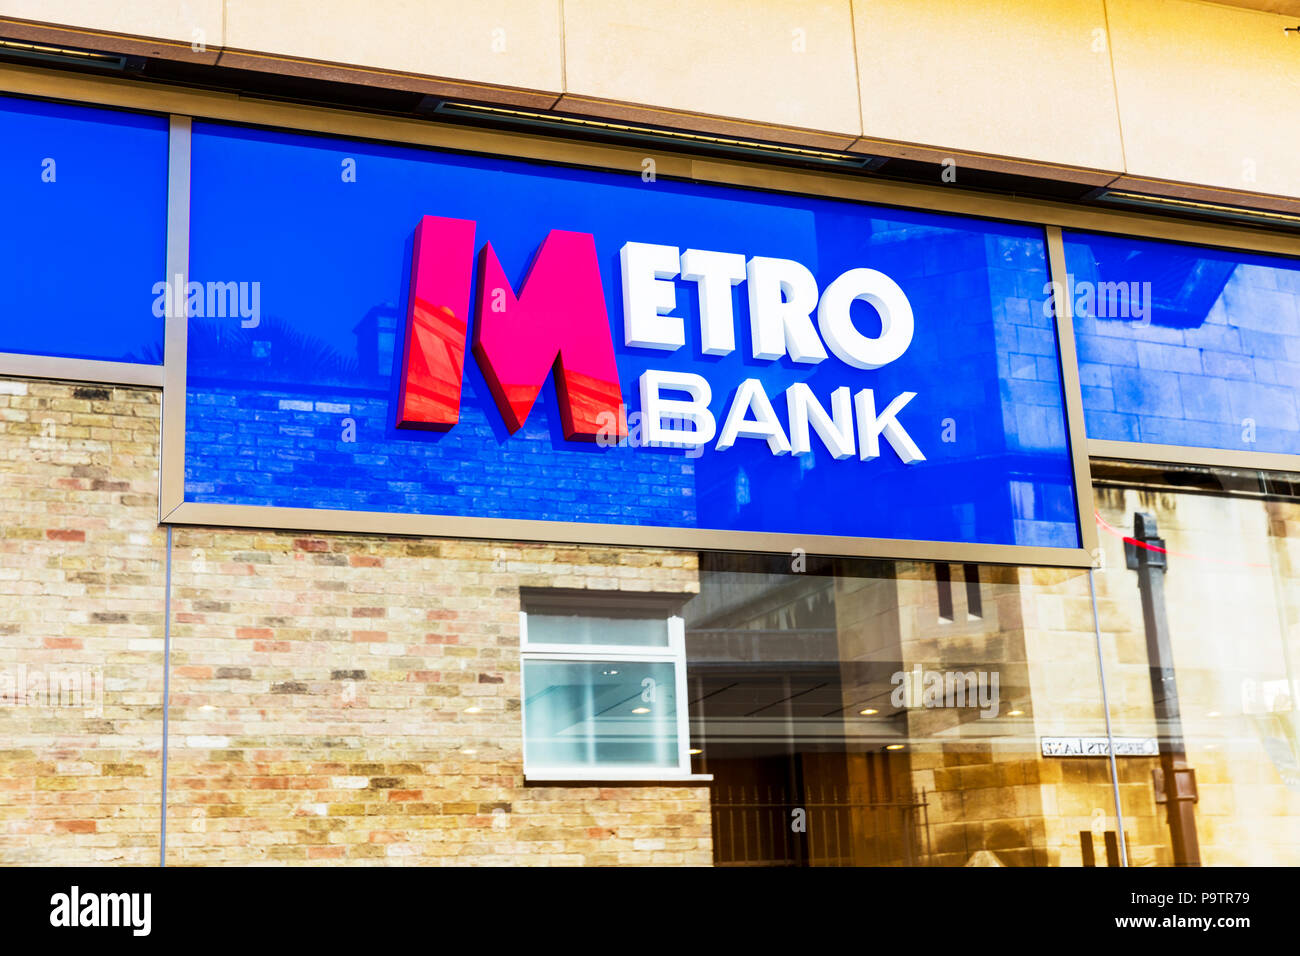 Metro Bank PLC is a retail bank operating in the UK, Metro Bank, Metro Bank sign, Metro Bank building, Metro Bank UK, UK Banks, UK bank, banks UK, UK Stock Photo